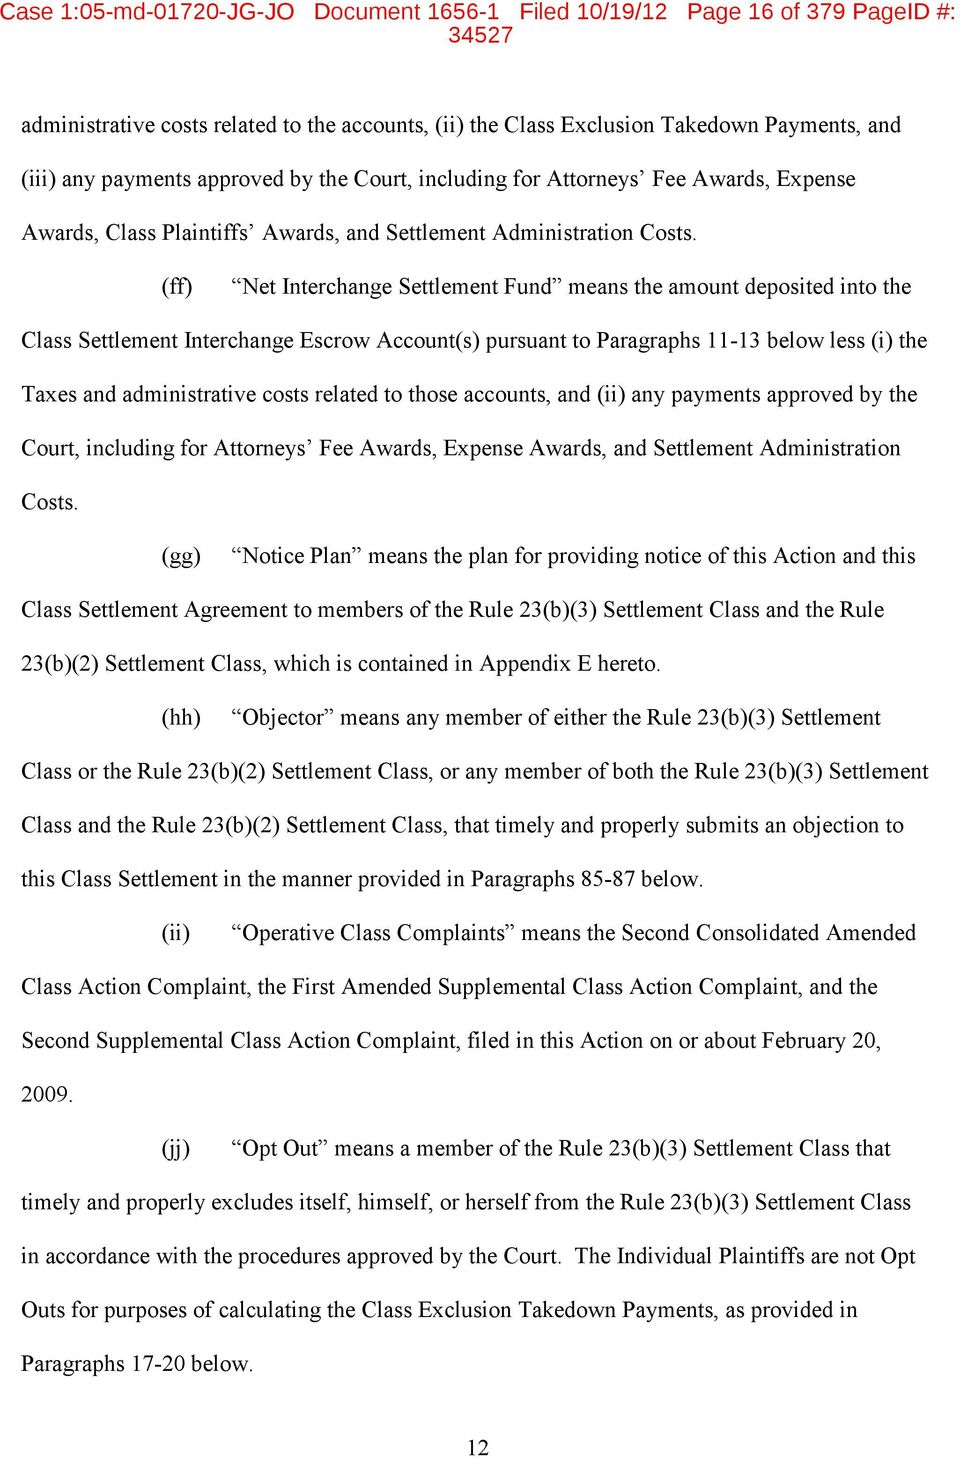 (ff) Net Interchange Settlement Fund means the amount deposited into the Class Settlement Interchange Escrow Account(s) pursuant to Paragraphs 11-13 below less (i) the Taxes and administrative costs